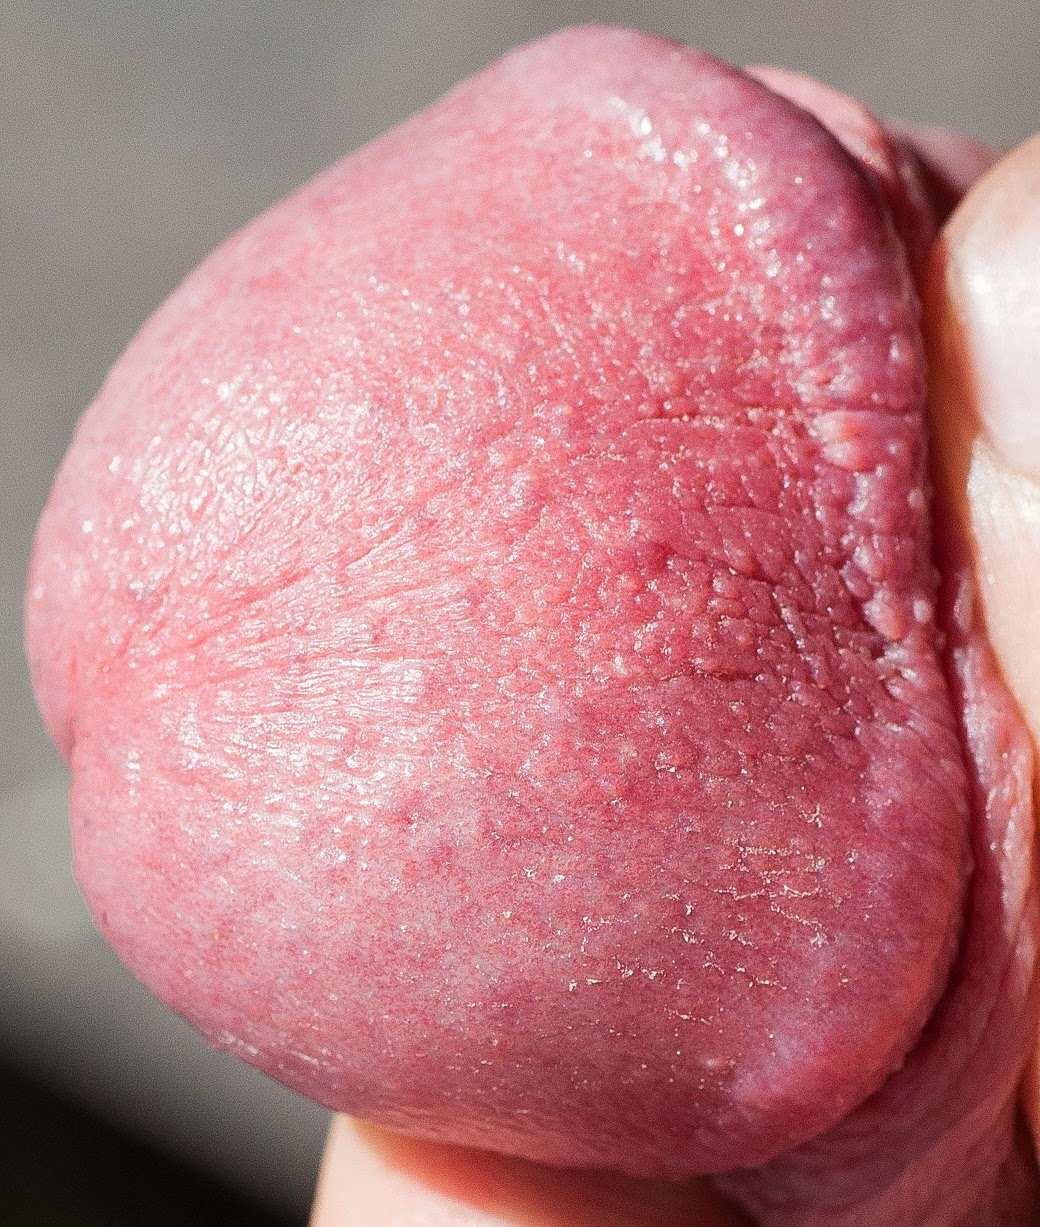 Genital Discoloration Pictures 60